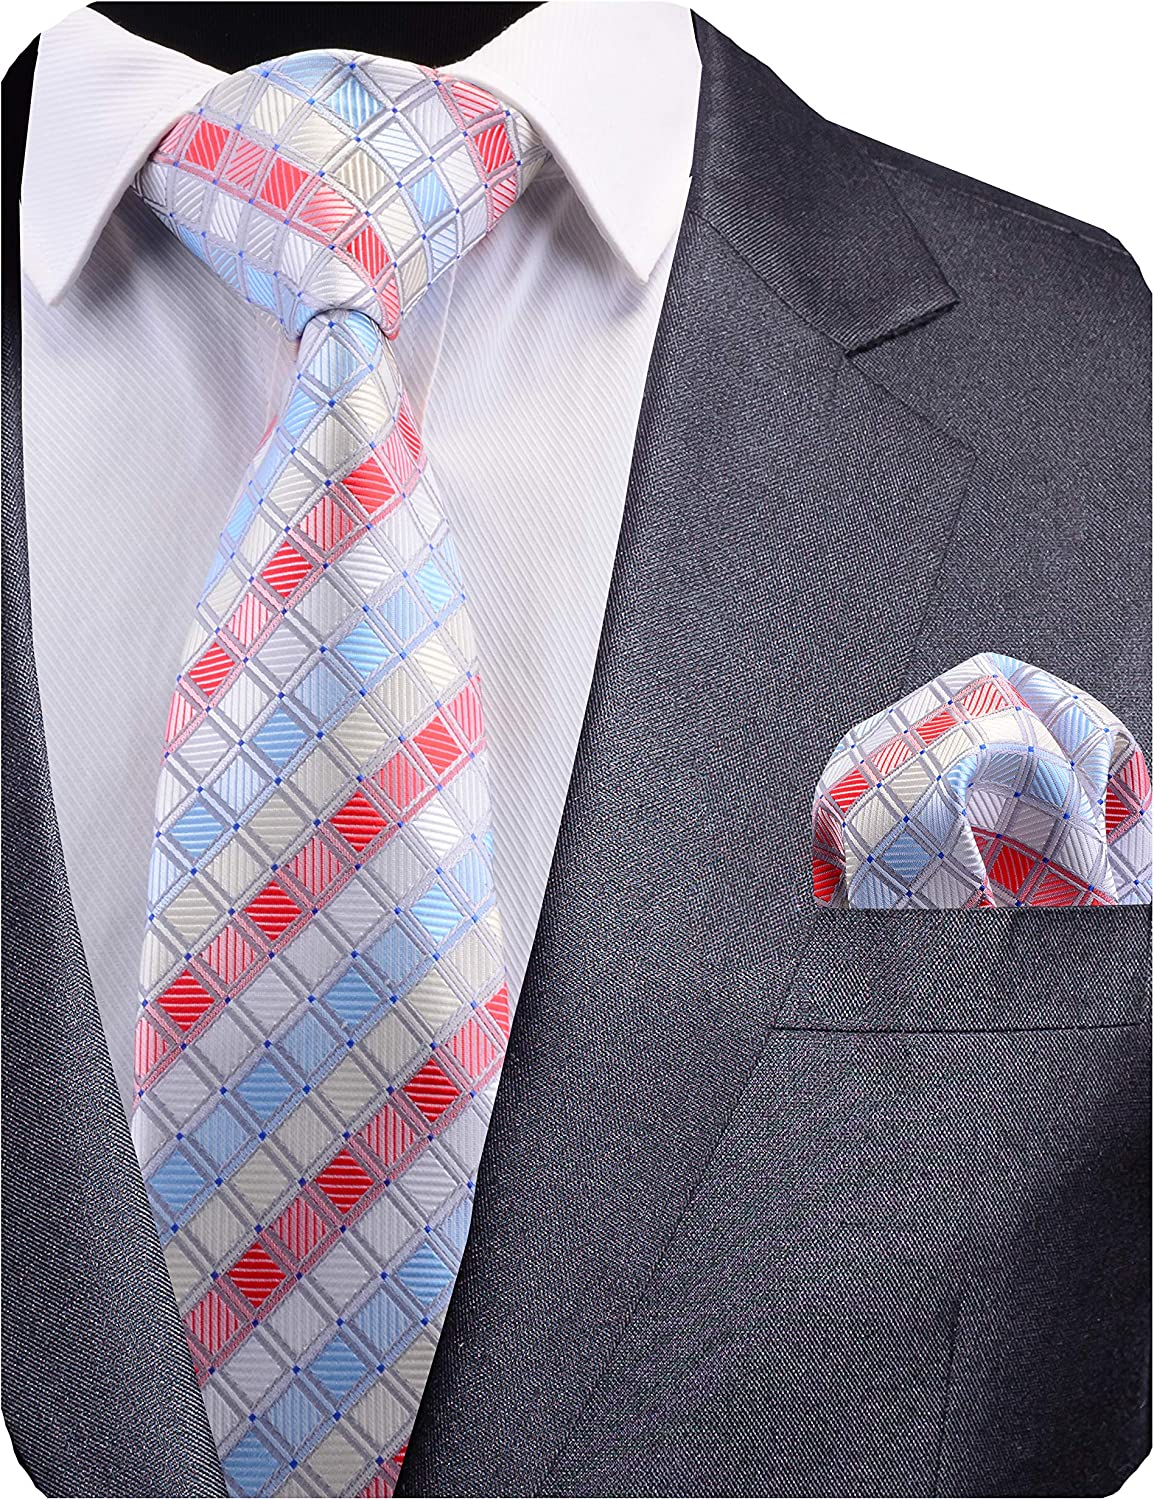 GUSLESON Mens Plaid Tie Wedding Necktie and Pocket Square Set